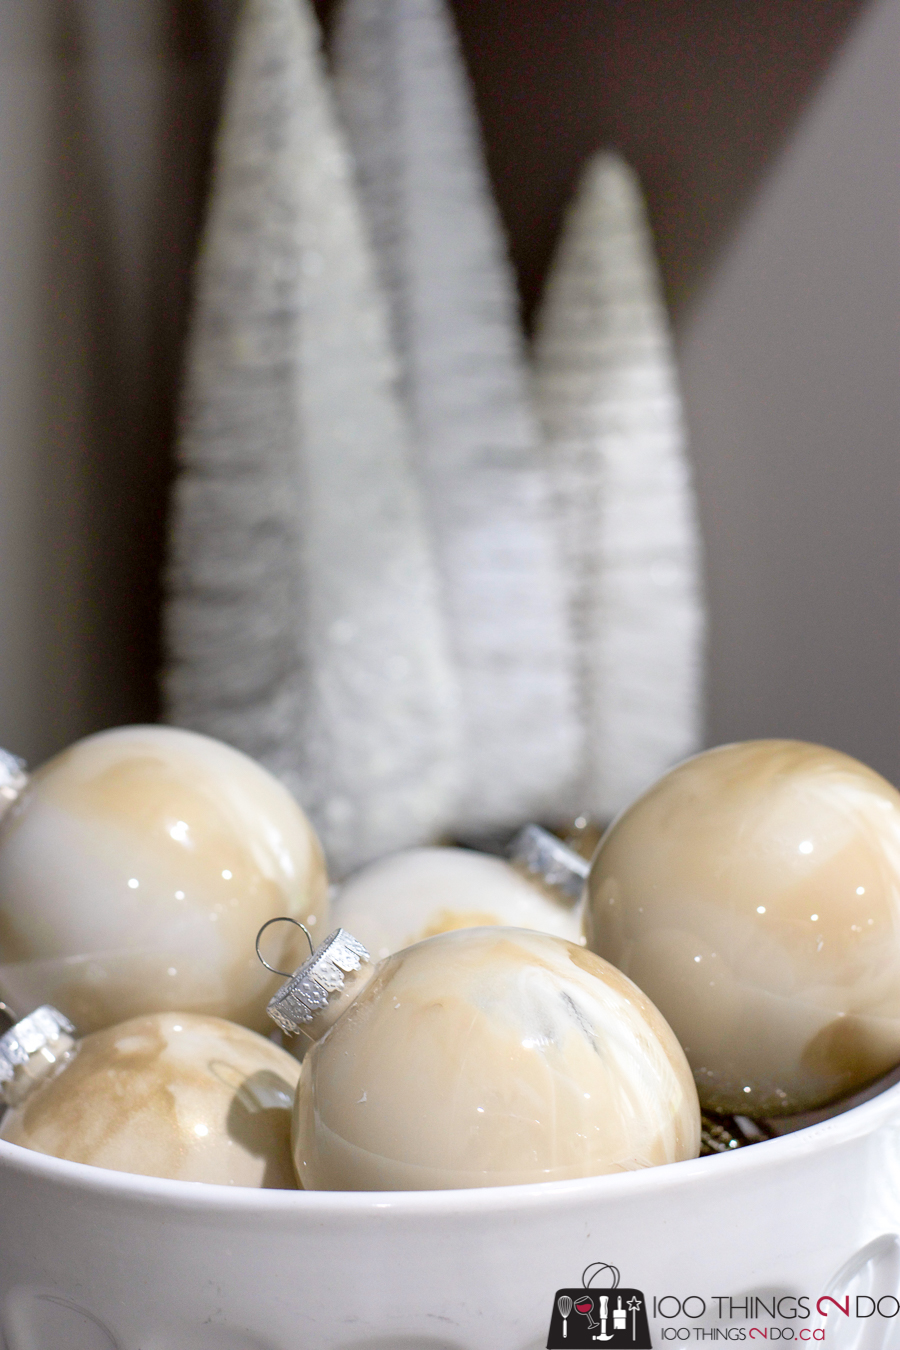 Easy marbled ornaments, painted ornaments, painting ornaments, marbled ornaments, how to marble ornaments